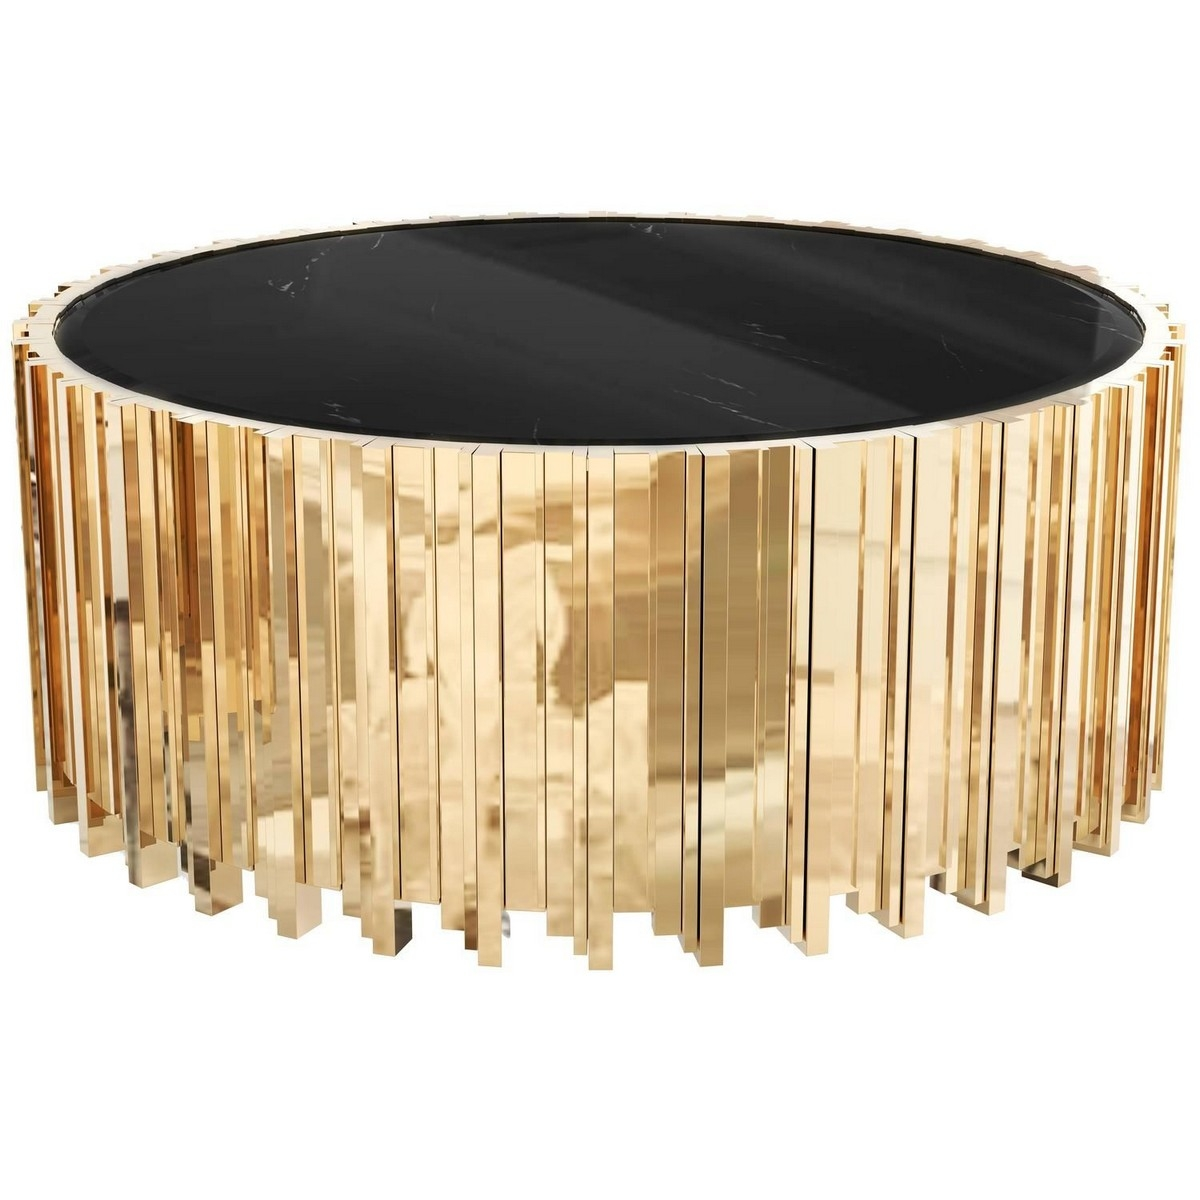 salone del mobile milano 2019 Salone Del Mobile Milano | Top Center Tables (Part II) 2